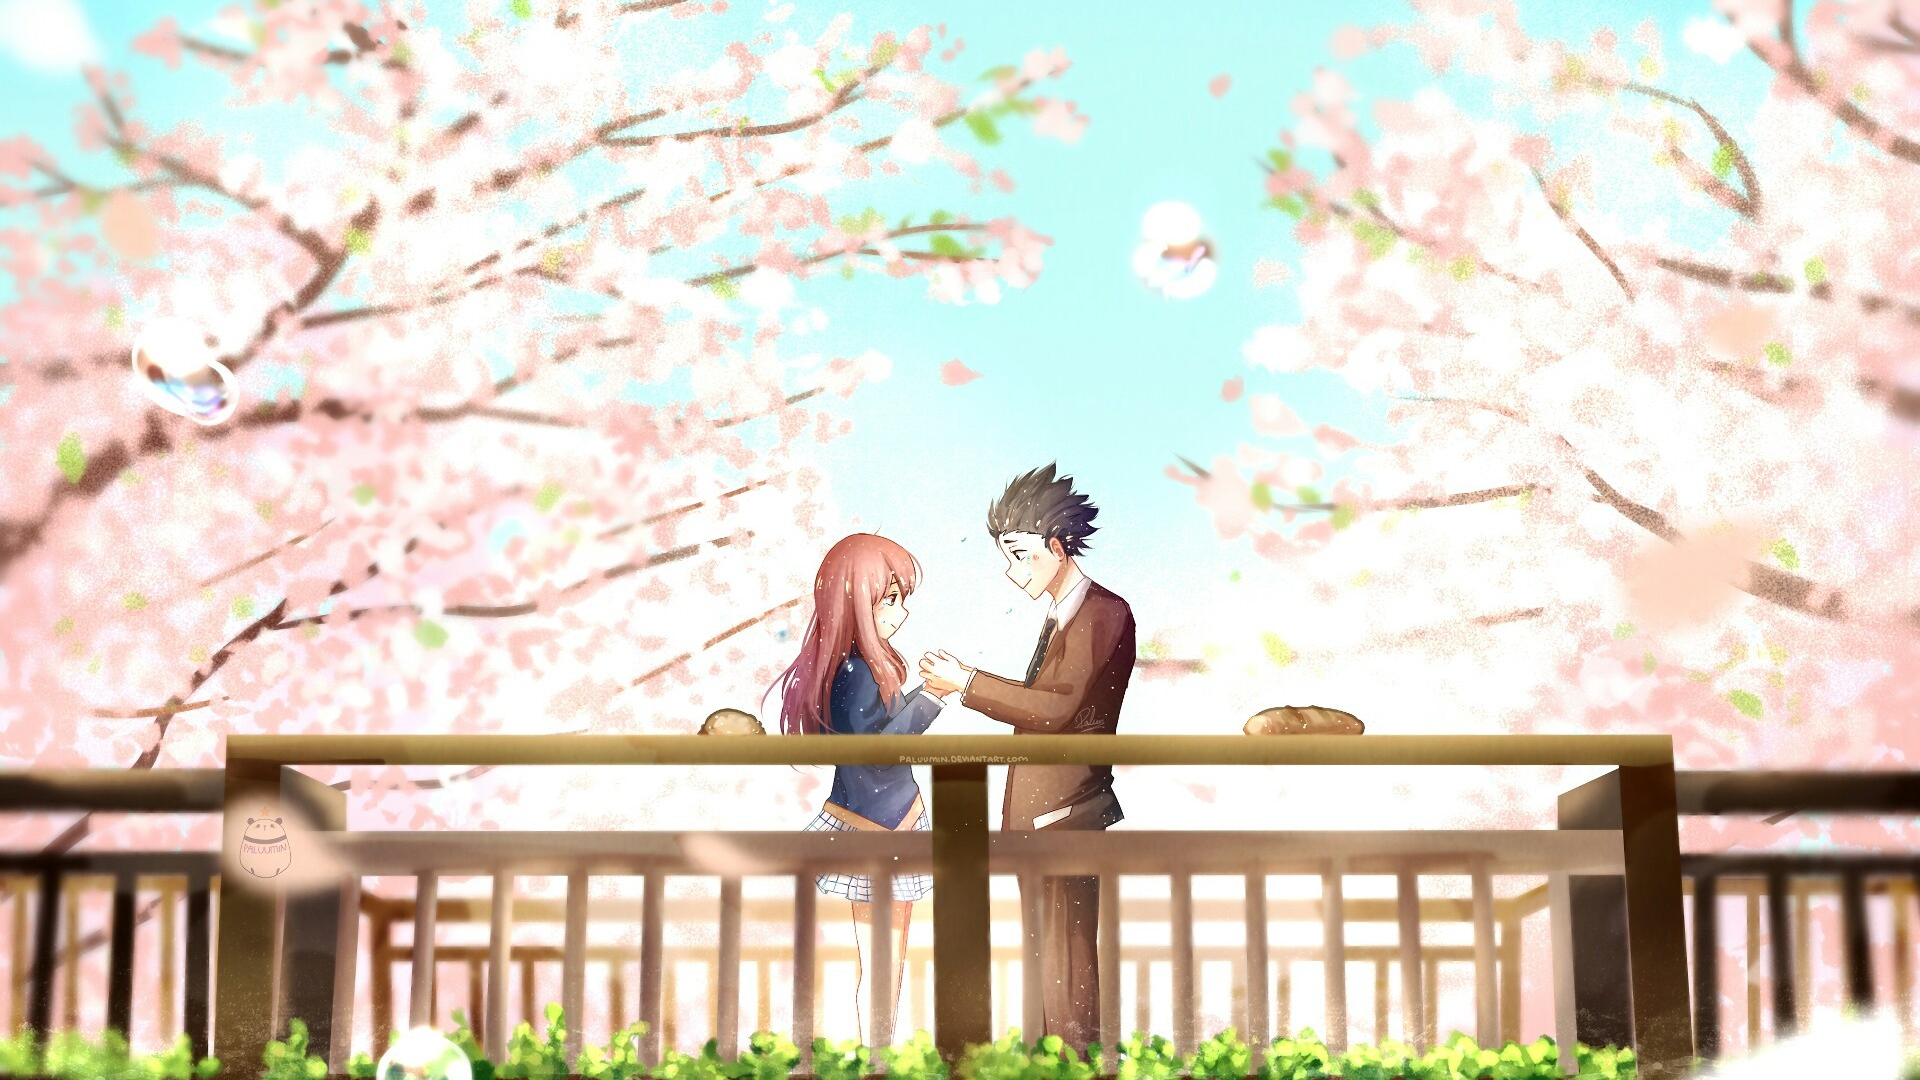 Free download A Silent Voice Wallpapers 66 images ...